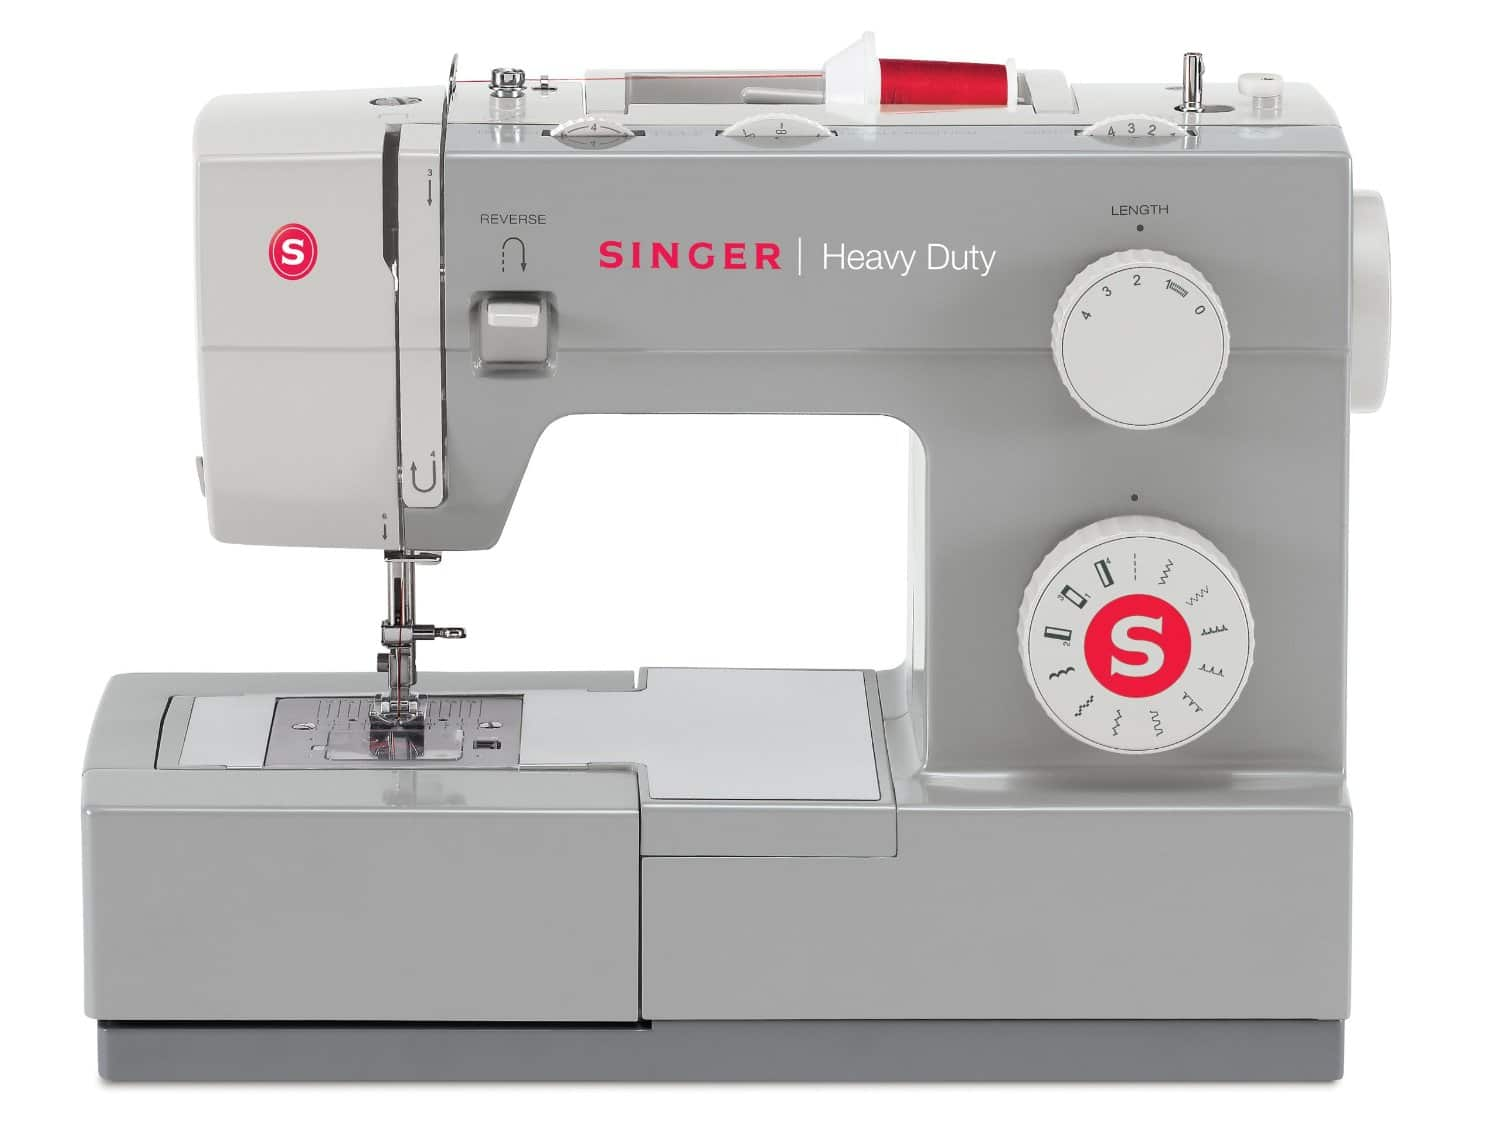 Singer 4411 Heavy Duty Extra-High Speed Sewing Machine  $101.55 + Free S/H